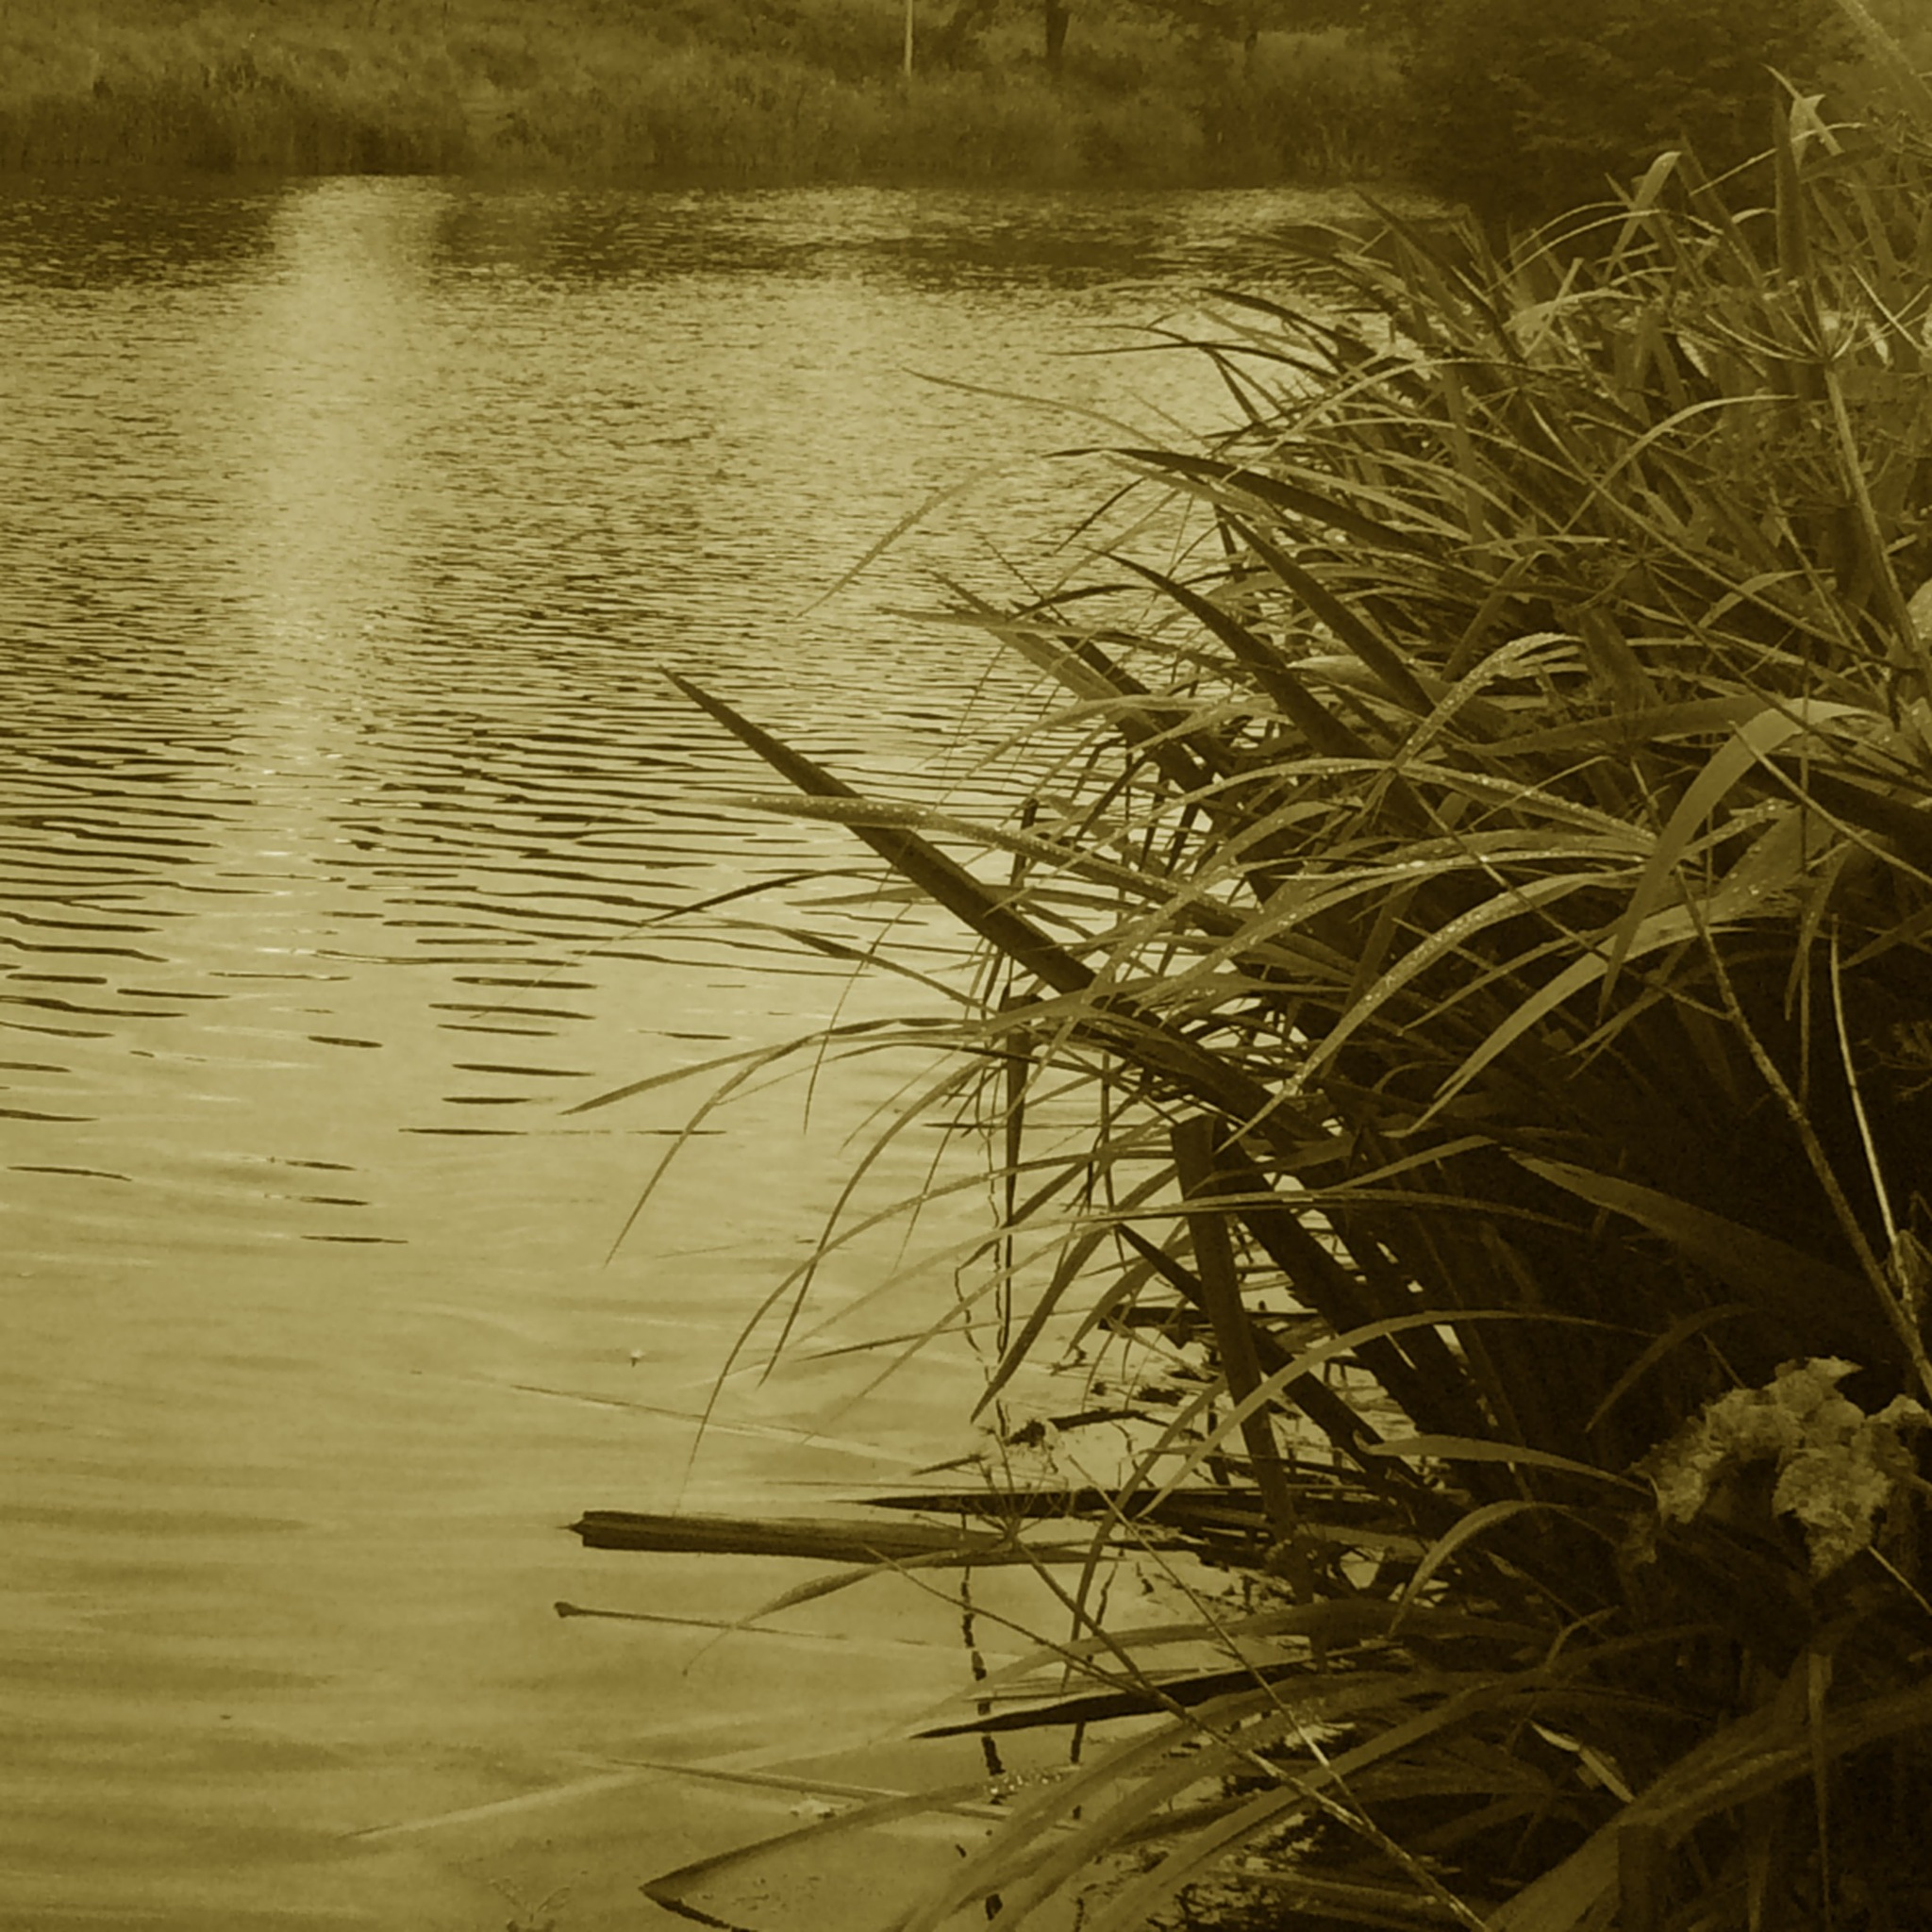 Reeds and Water by Abigail